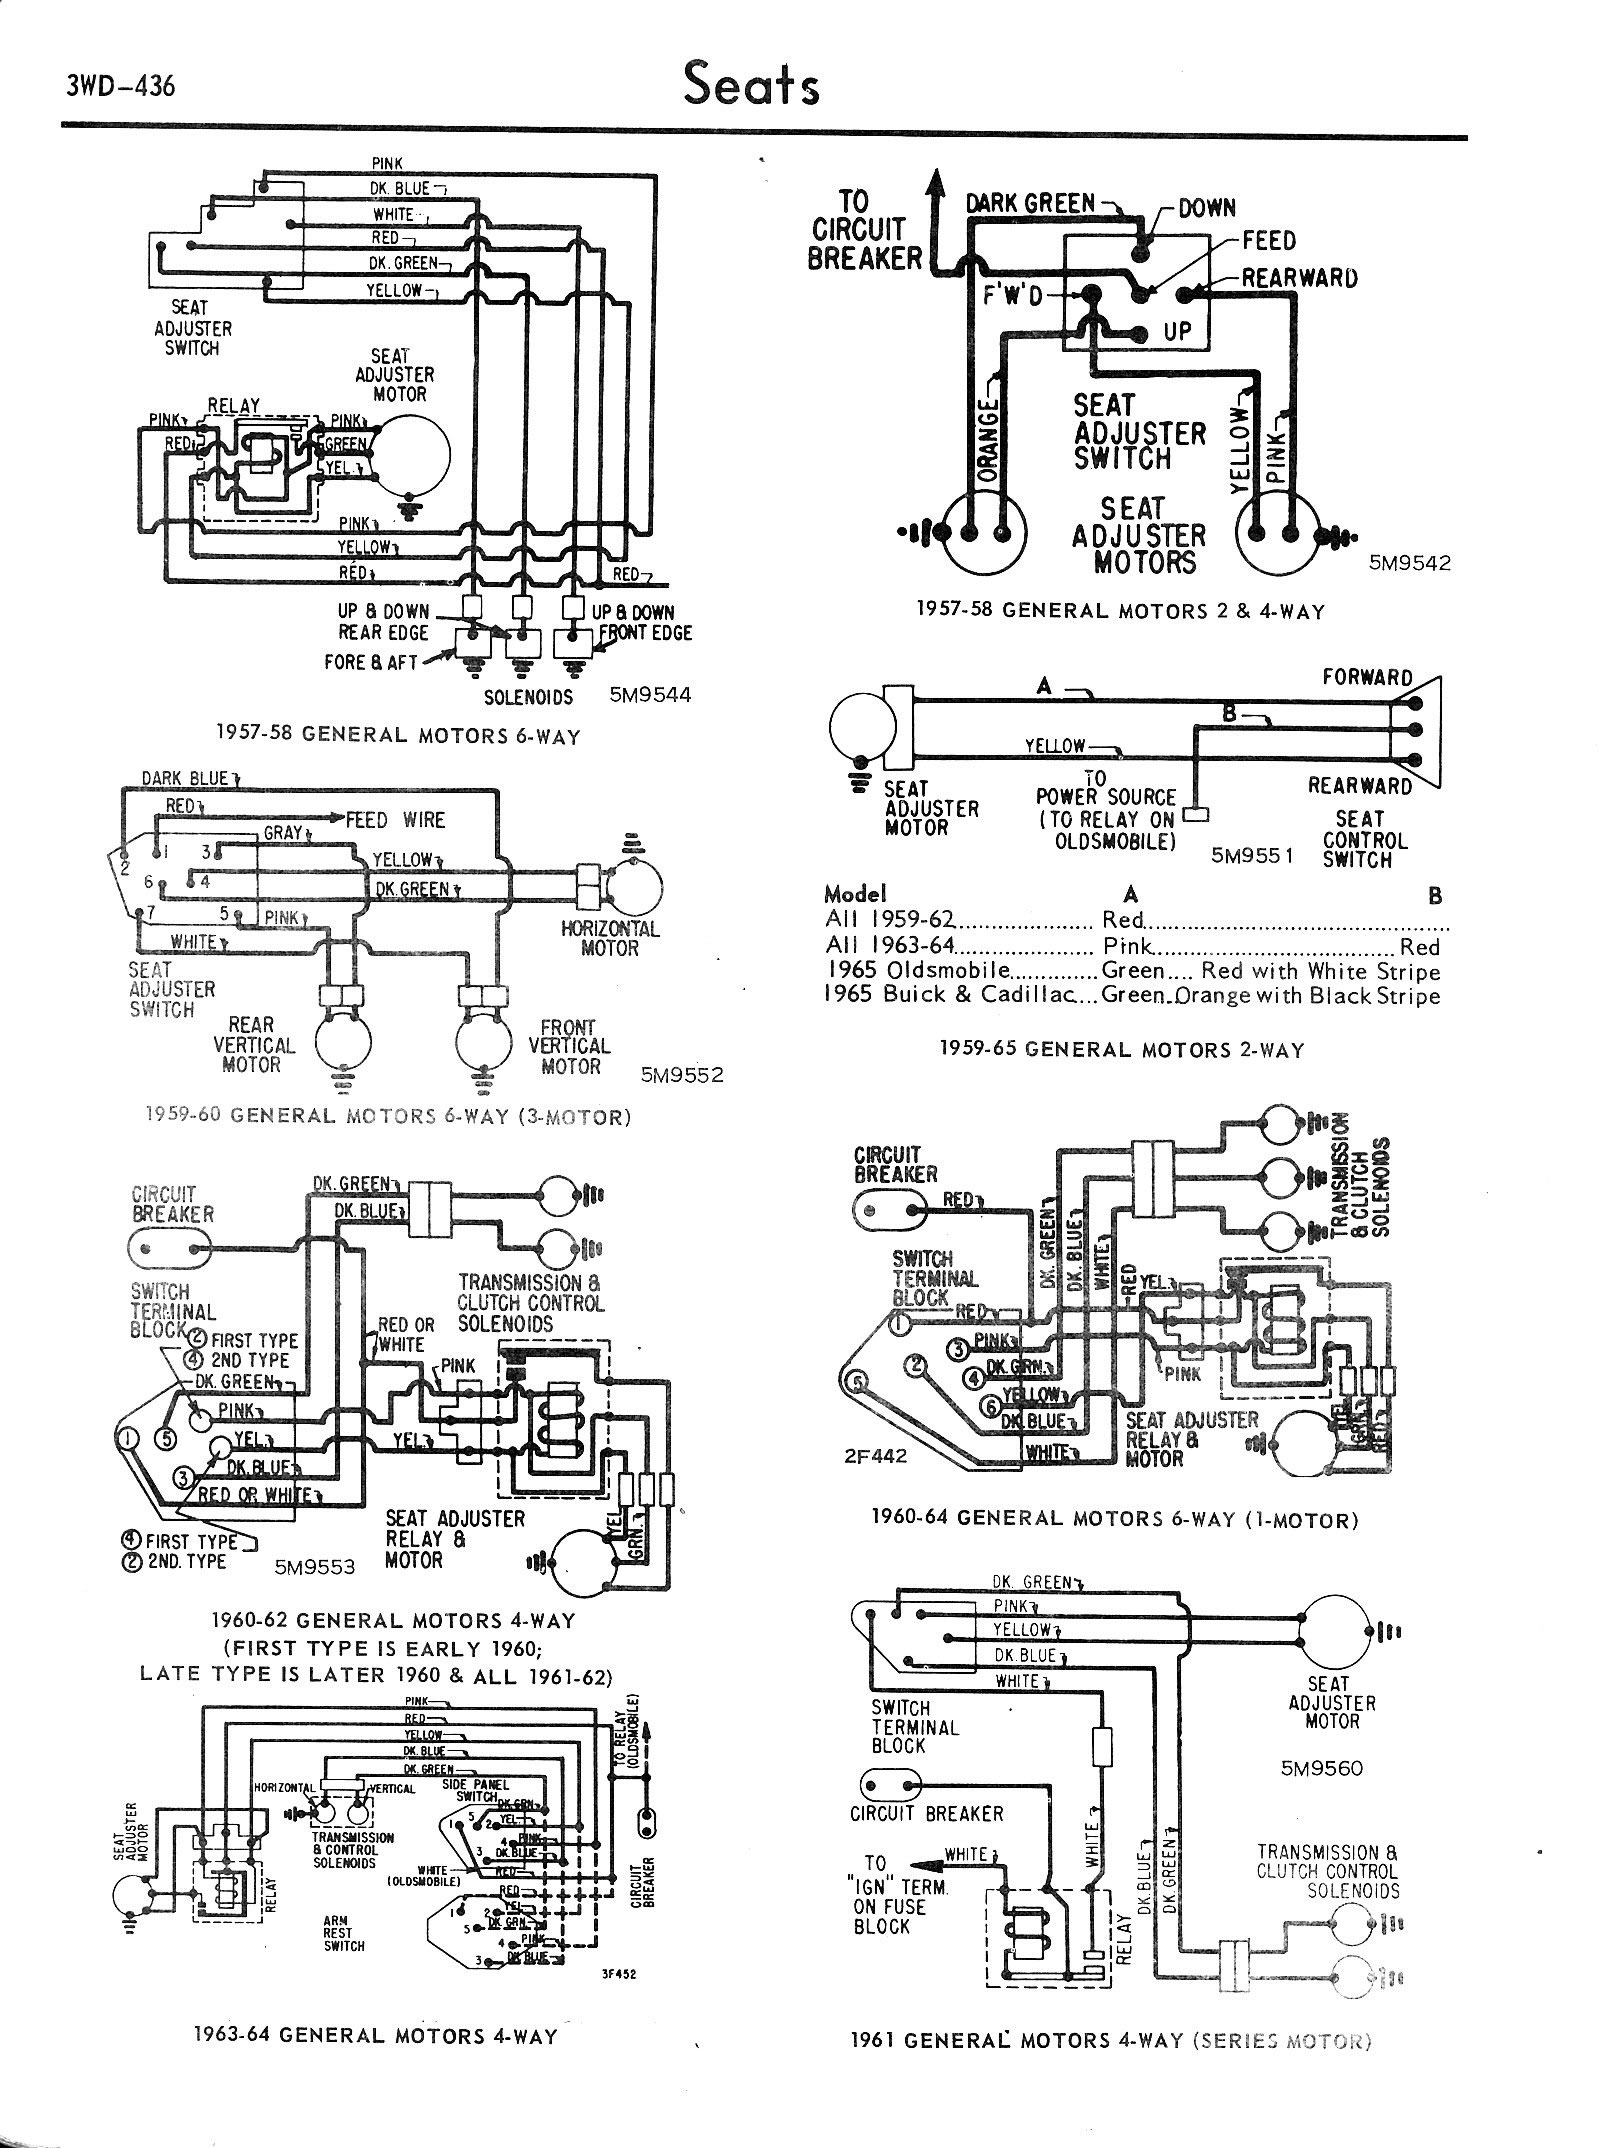 3WD 436_jpg chevy diagrams general motors wiring diagrams at alyssarenee.co